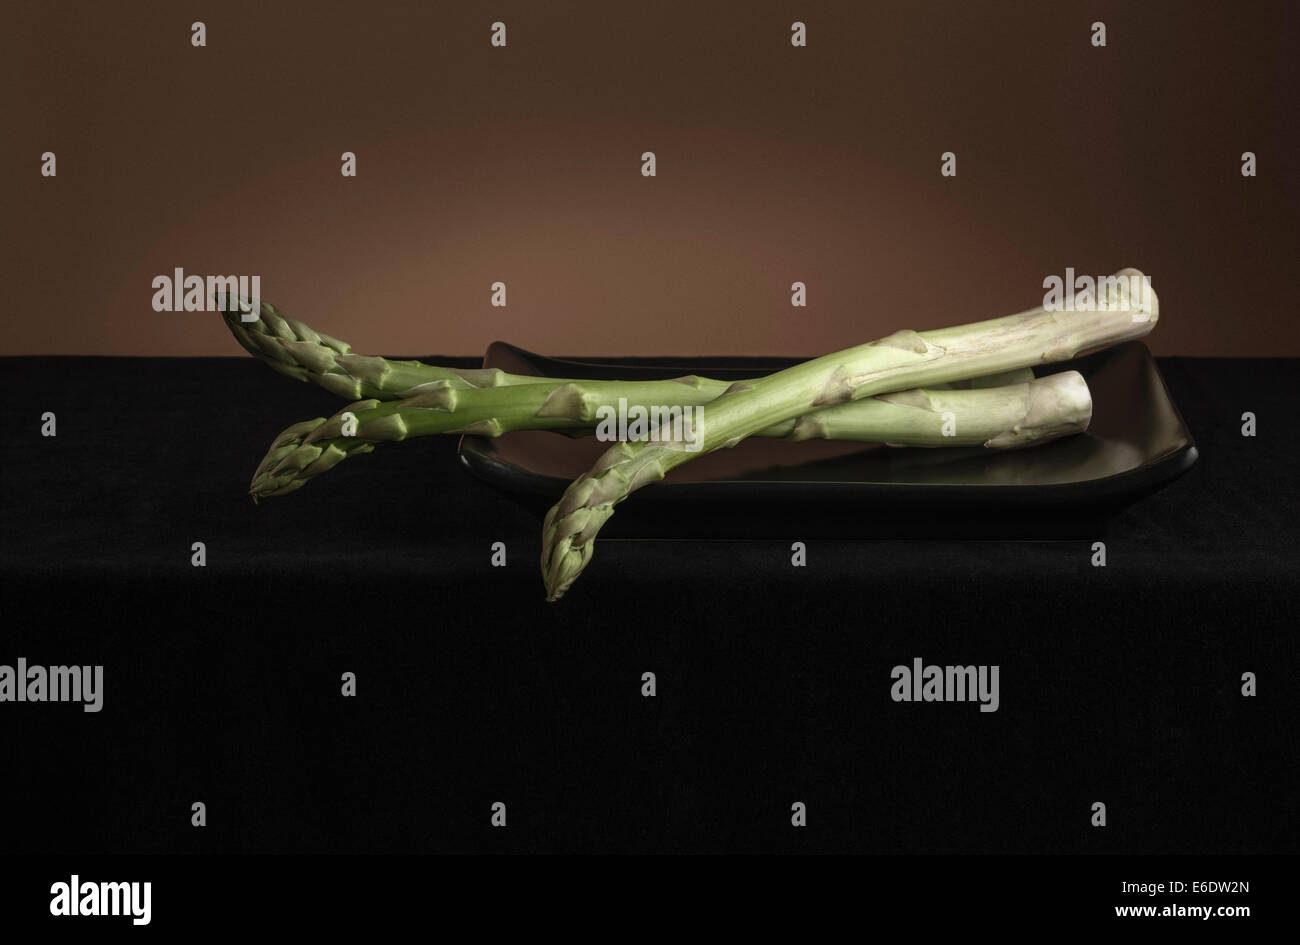 Asparagus in black dish on dark tablecloth - Stock Image